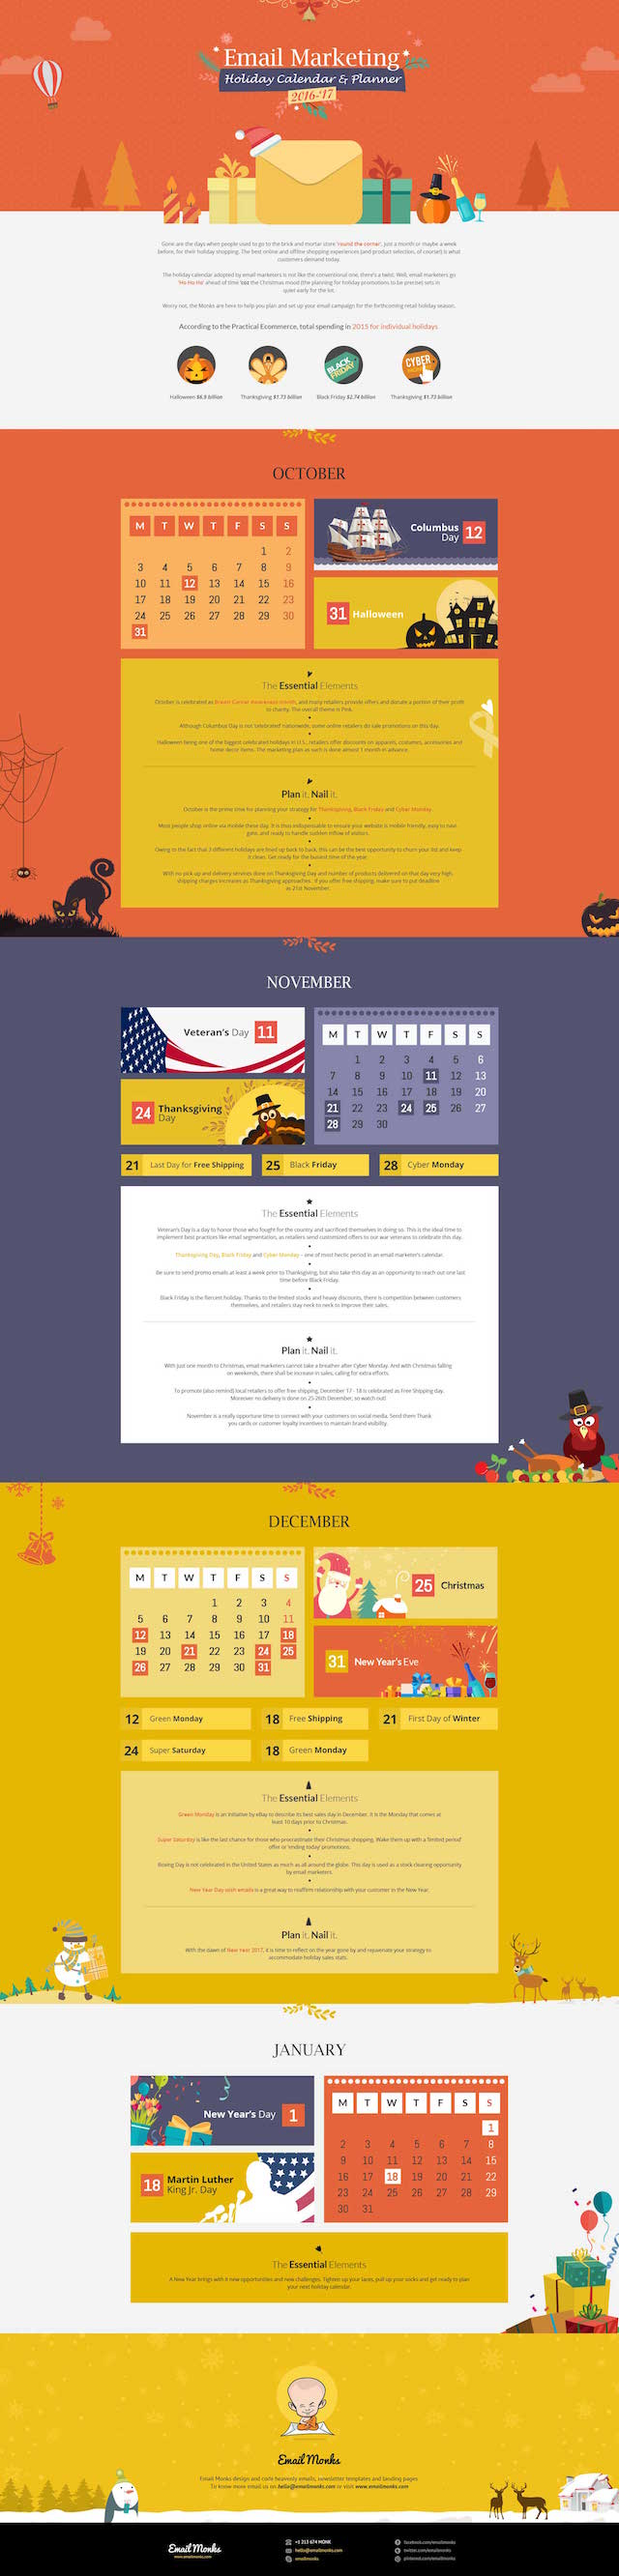 Holiday Email Marketing Calendar 2016-17 Infographic